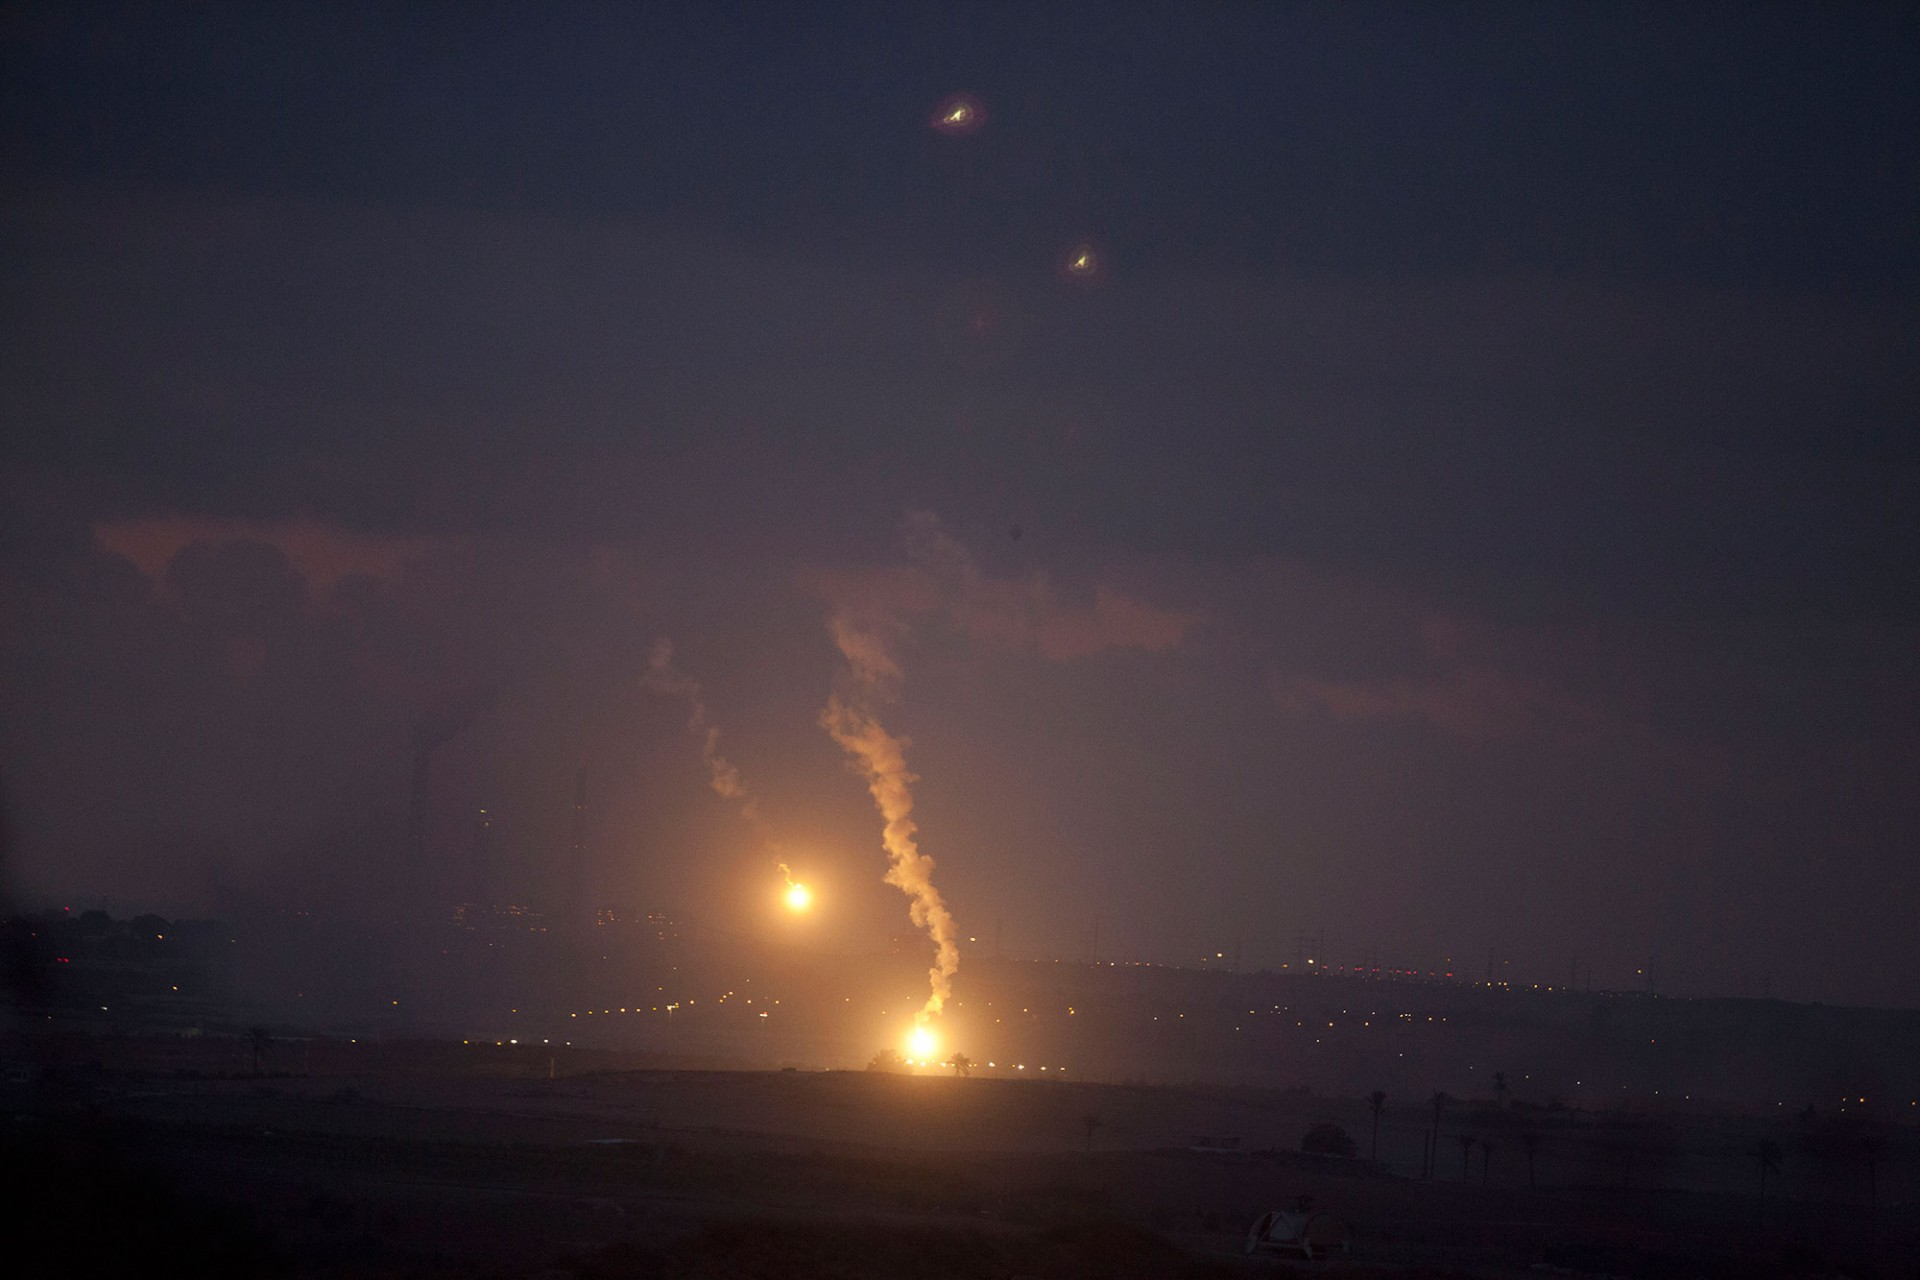 Illumination flares rises over Gaza, on July 17, 2014.